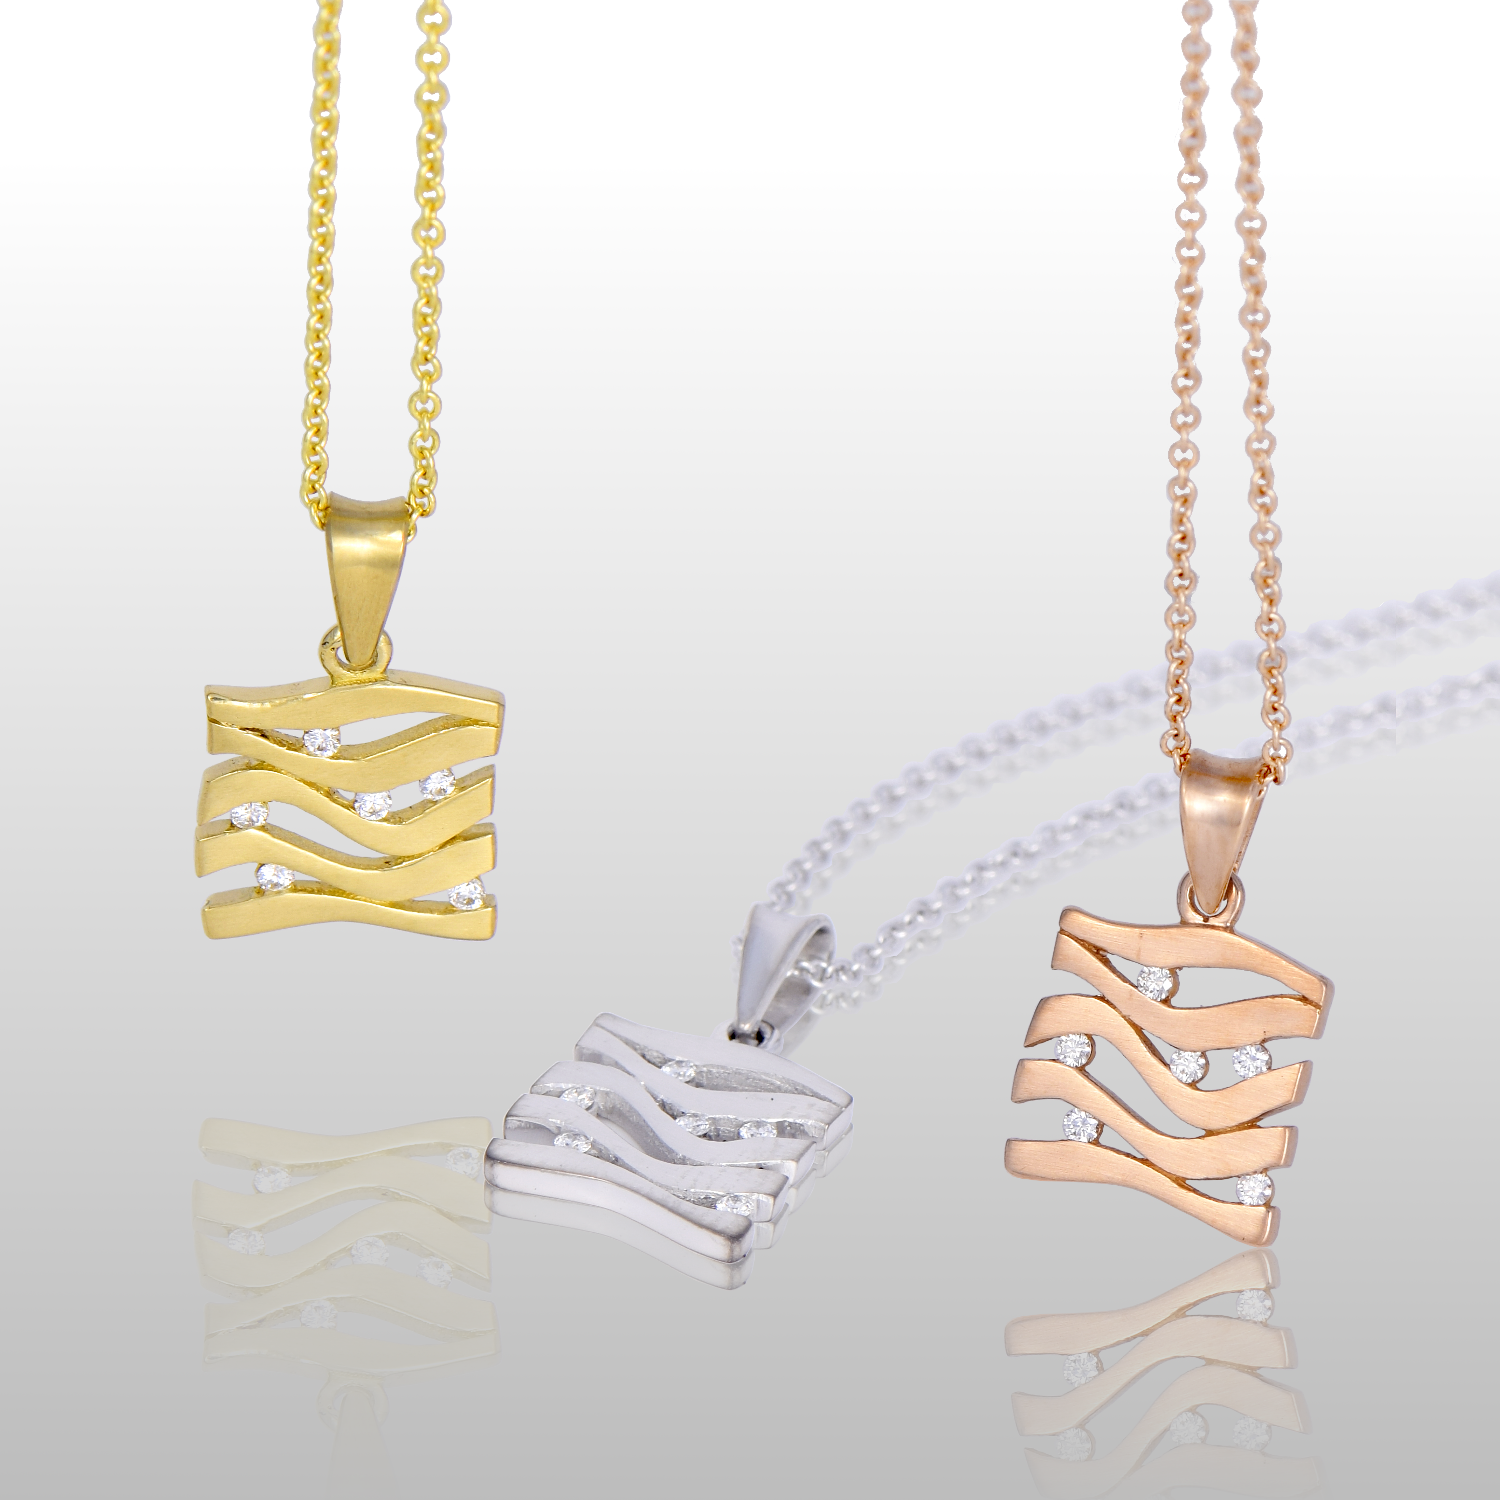 Wave Pendant 'Lamello' in 18k Yellow, Rose or White Gold or Platinum with Diamonds by Pratima Design Fine Art Jewelry